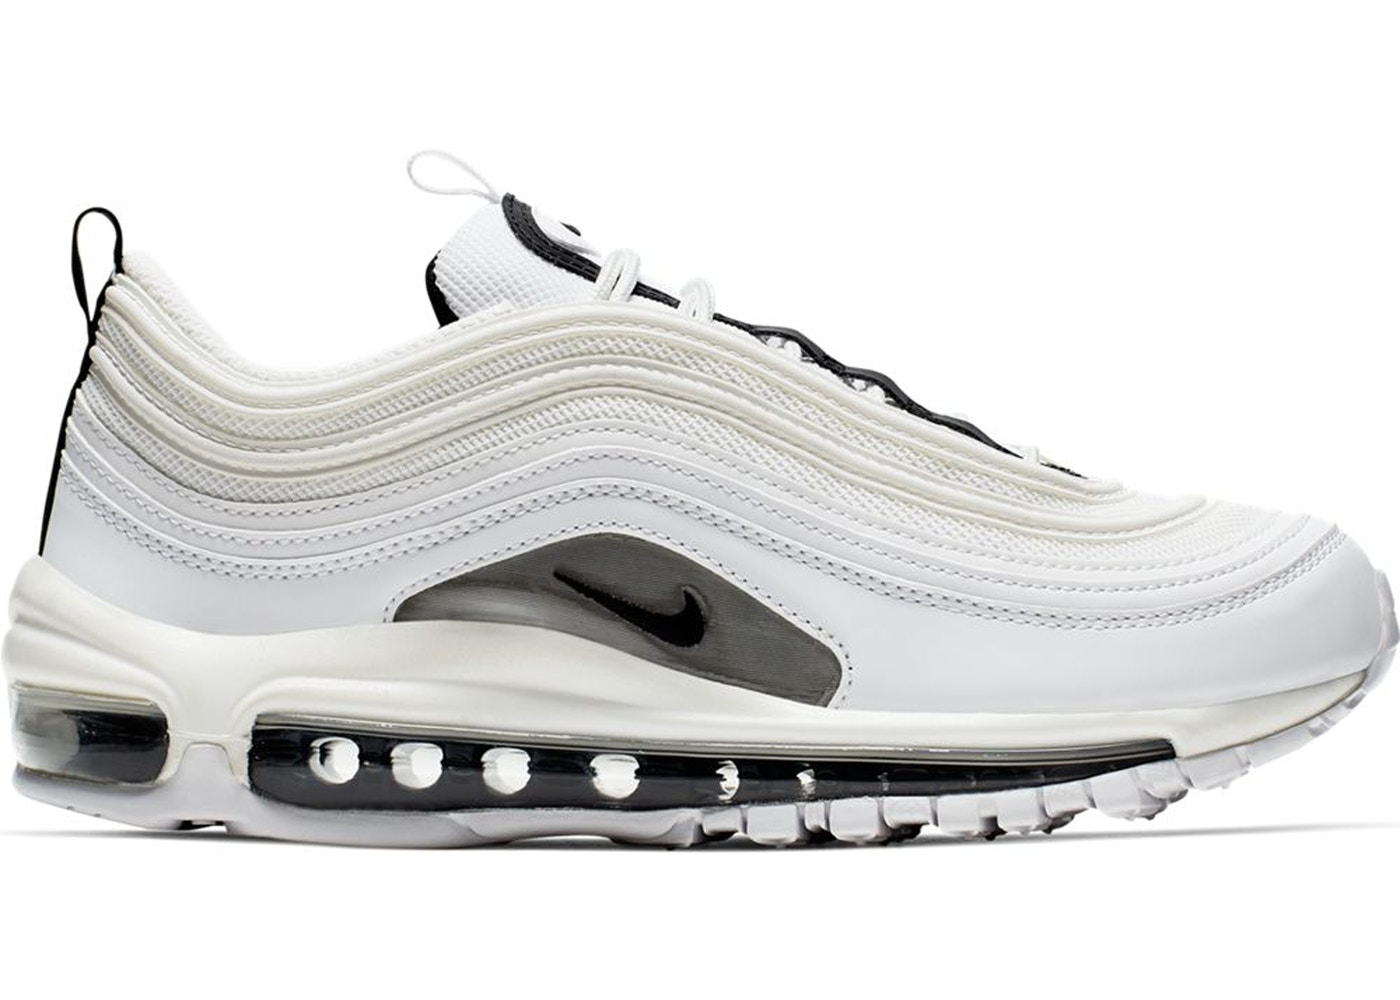 Air Max 97 White Black Silver (W)